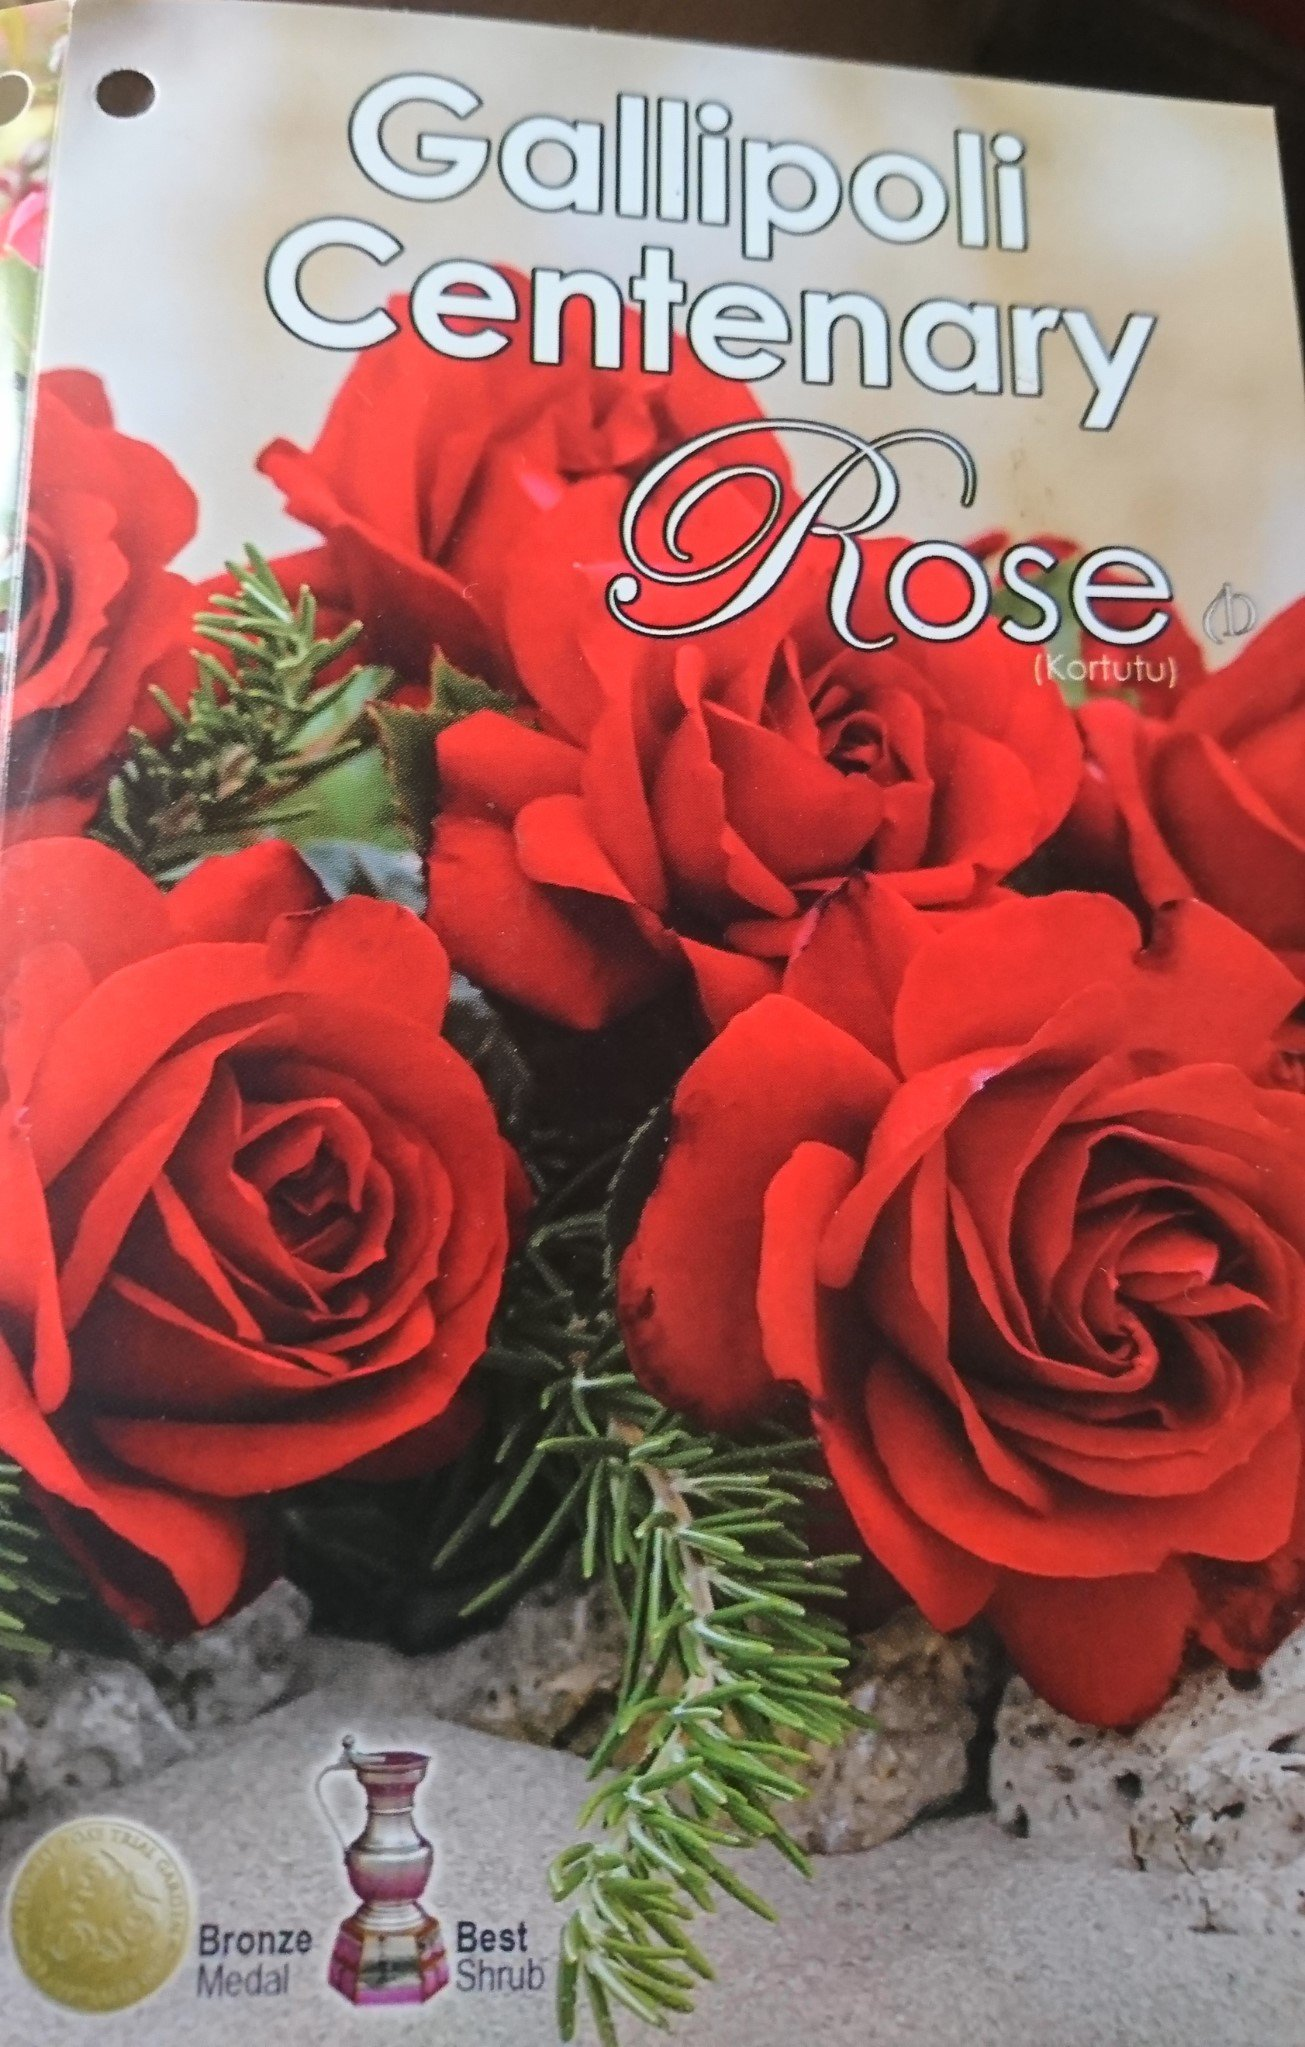 31 Gallipoli Centenary Rose 2018